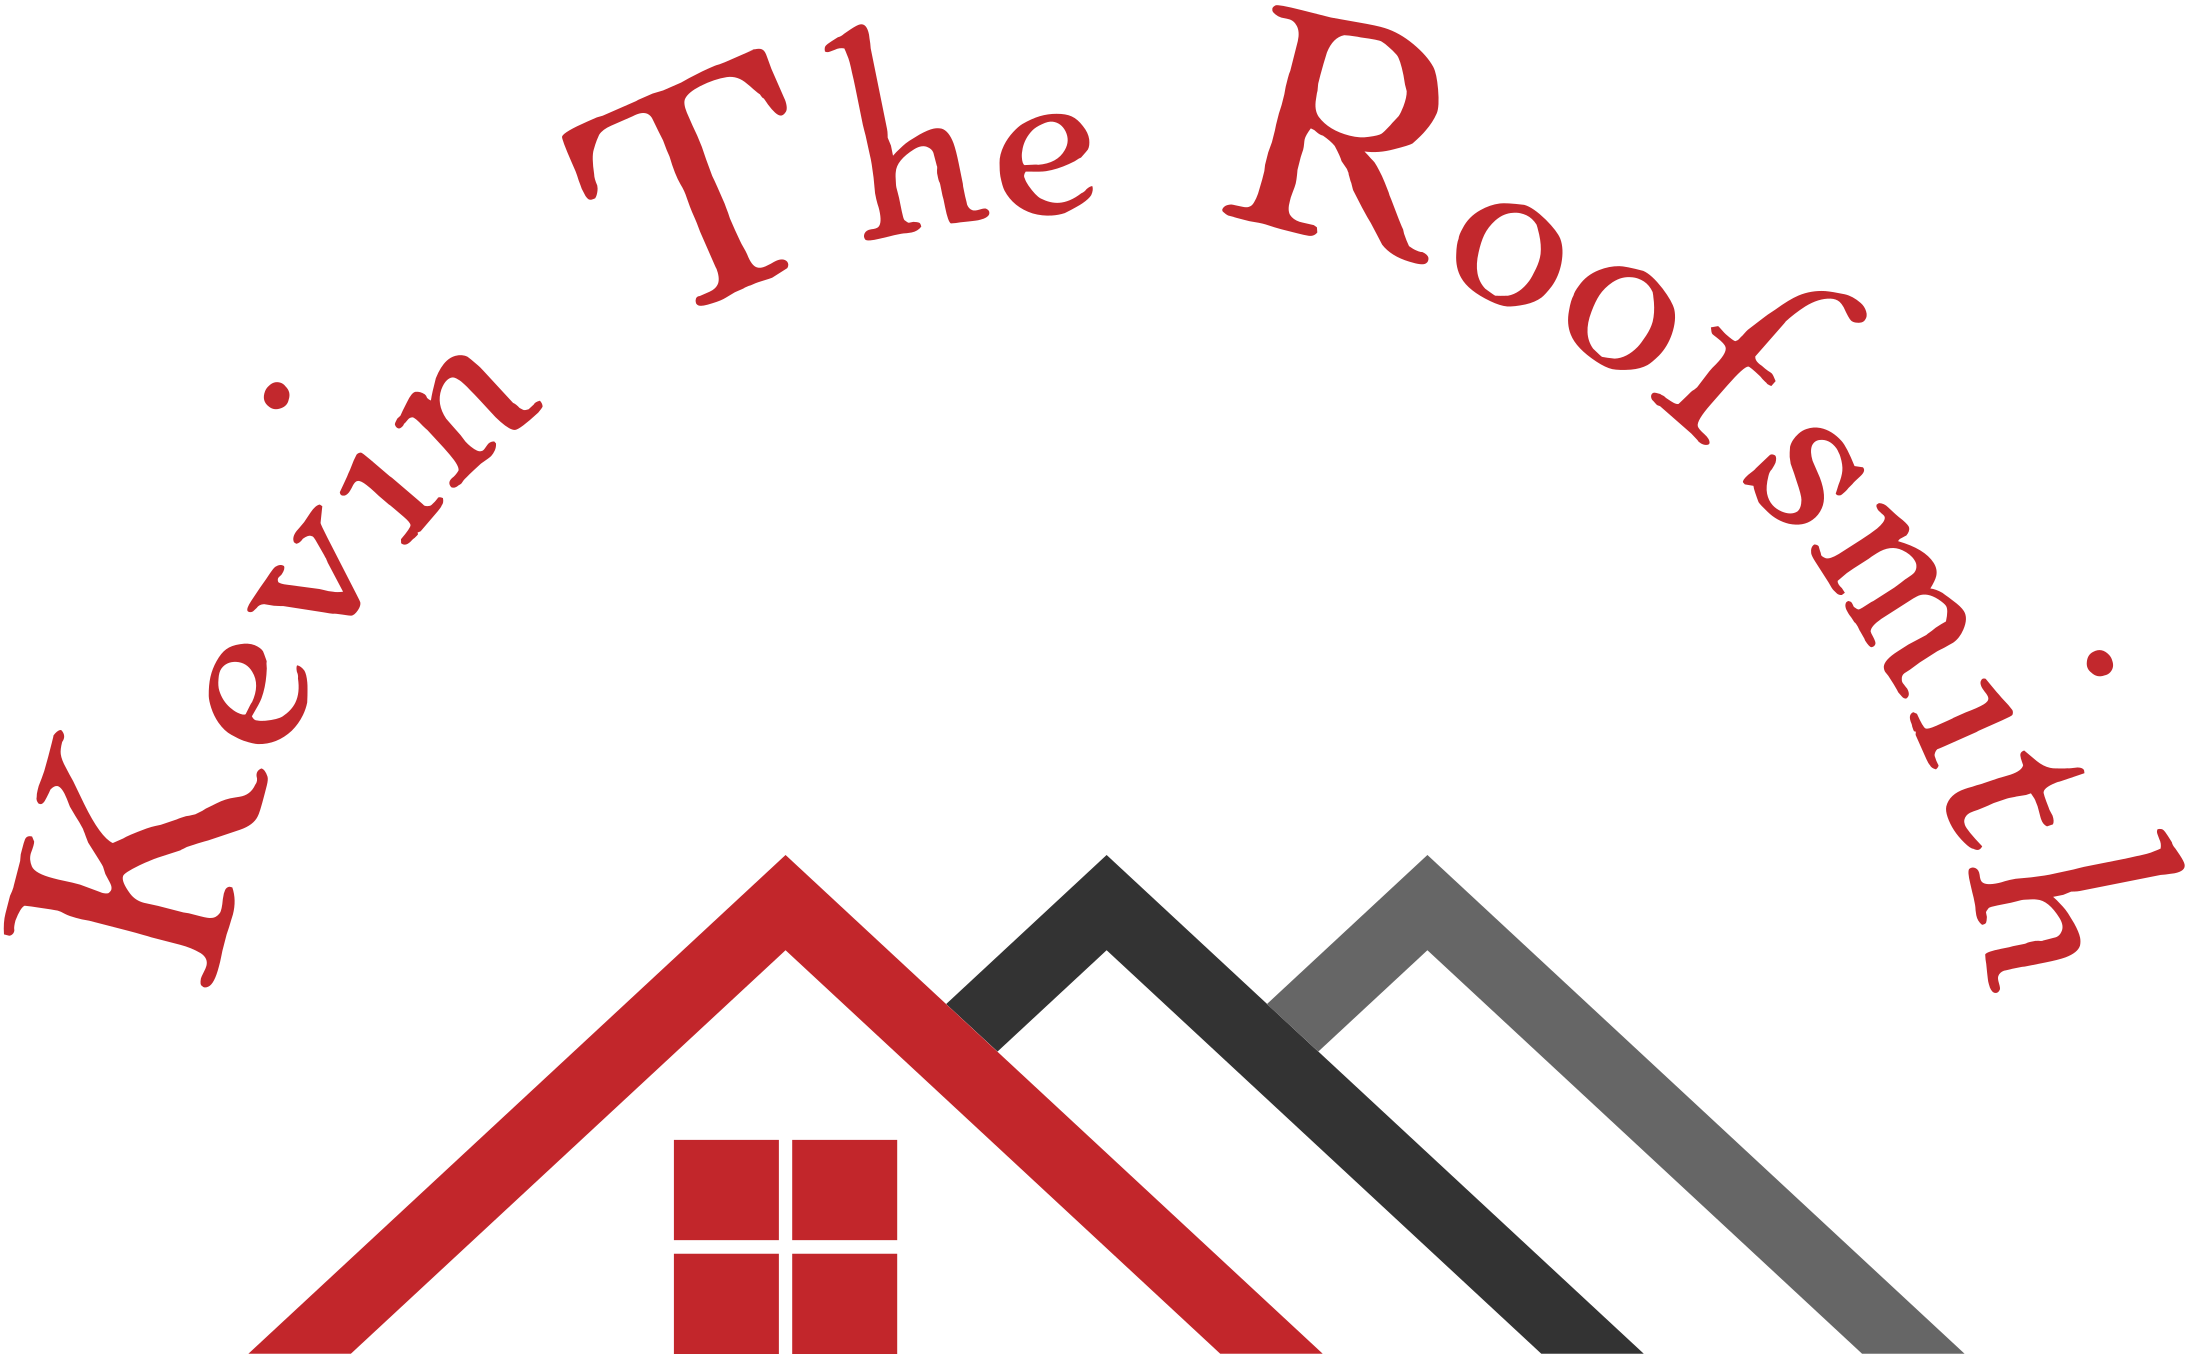 Kevin The Roofsmith logo